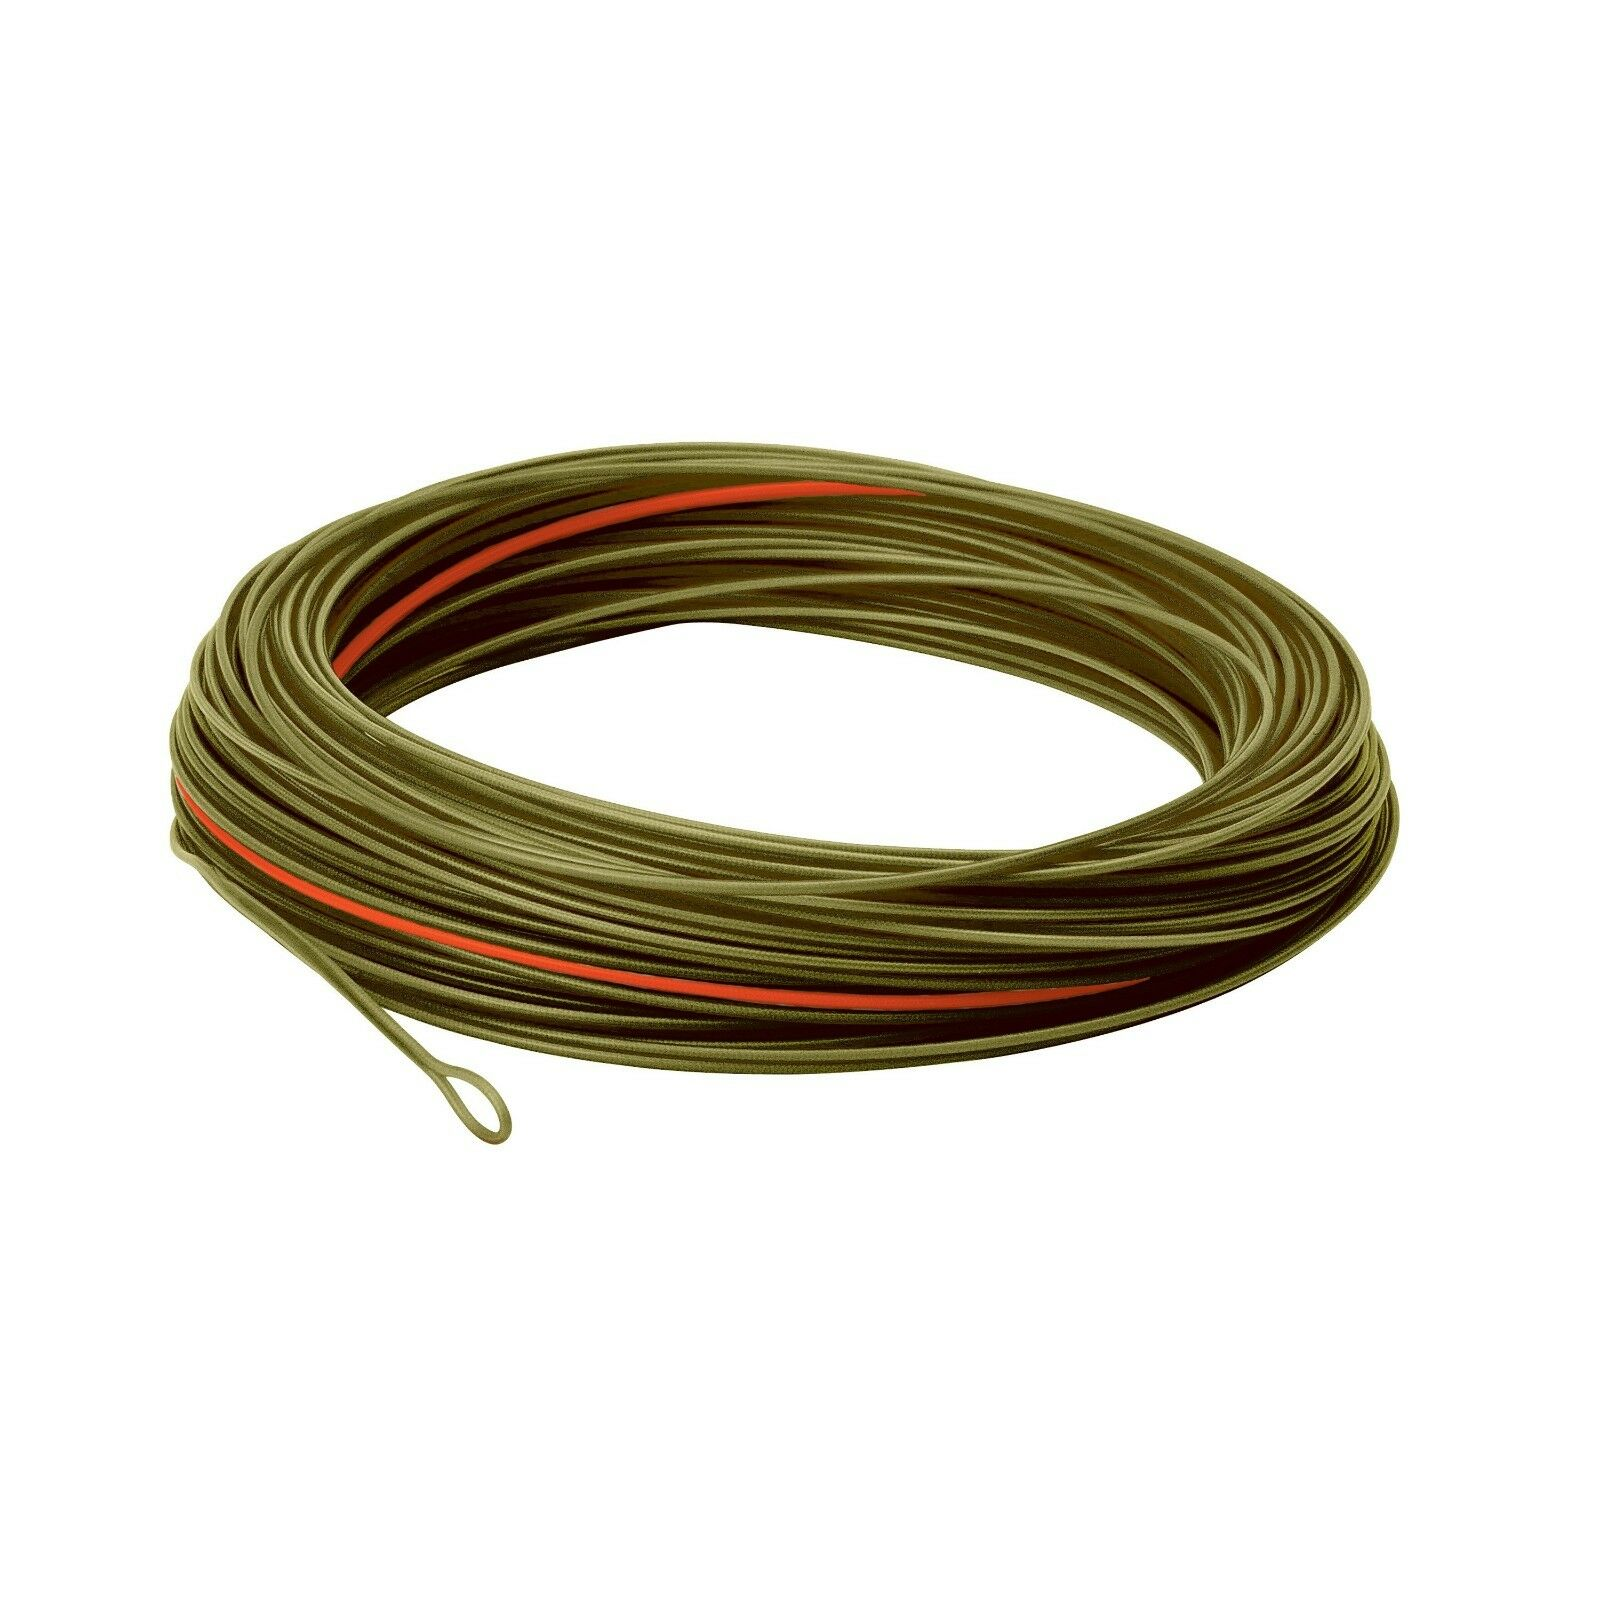 Cortland Competition Medium Intermediate Fly Line